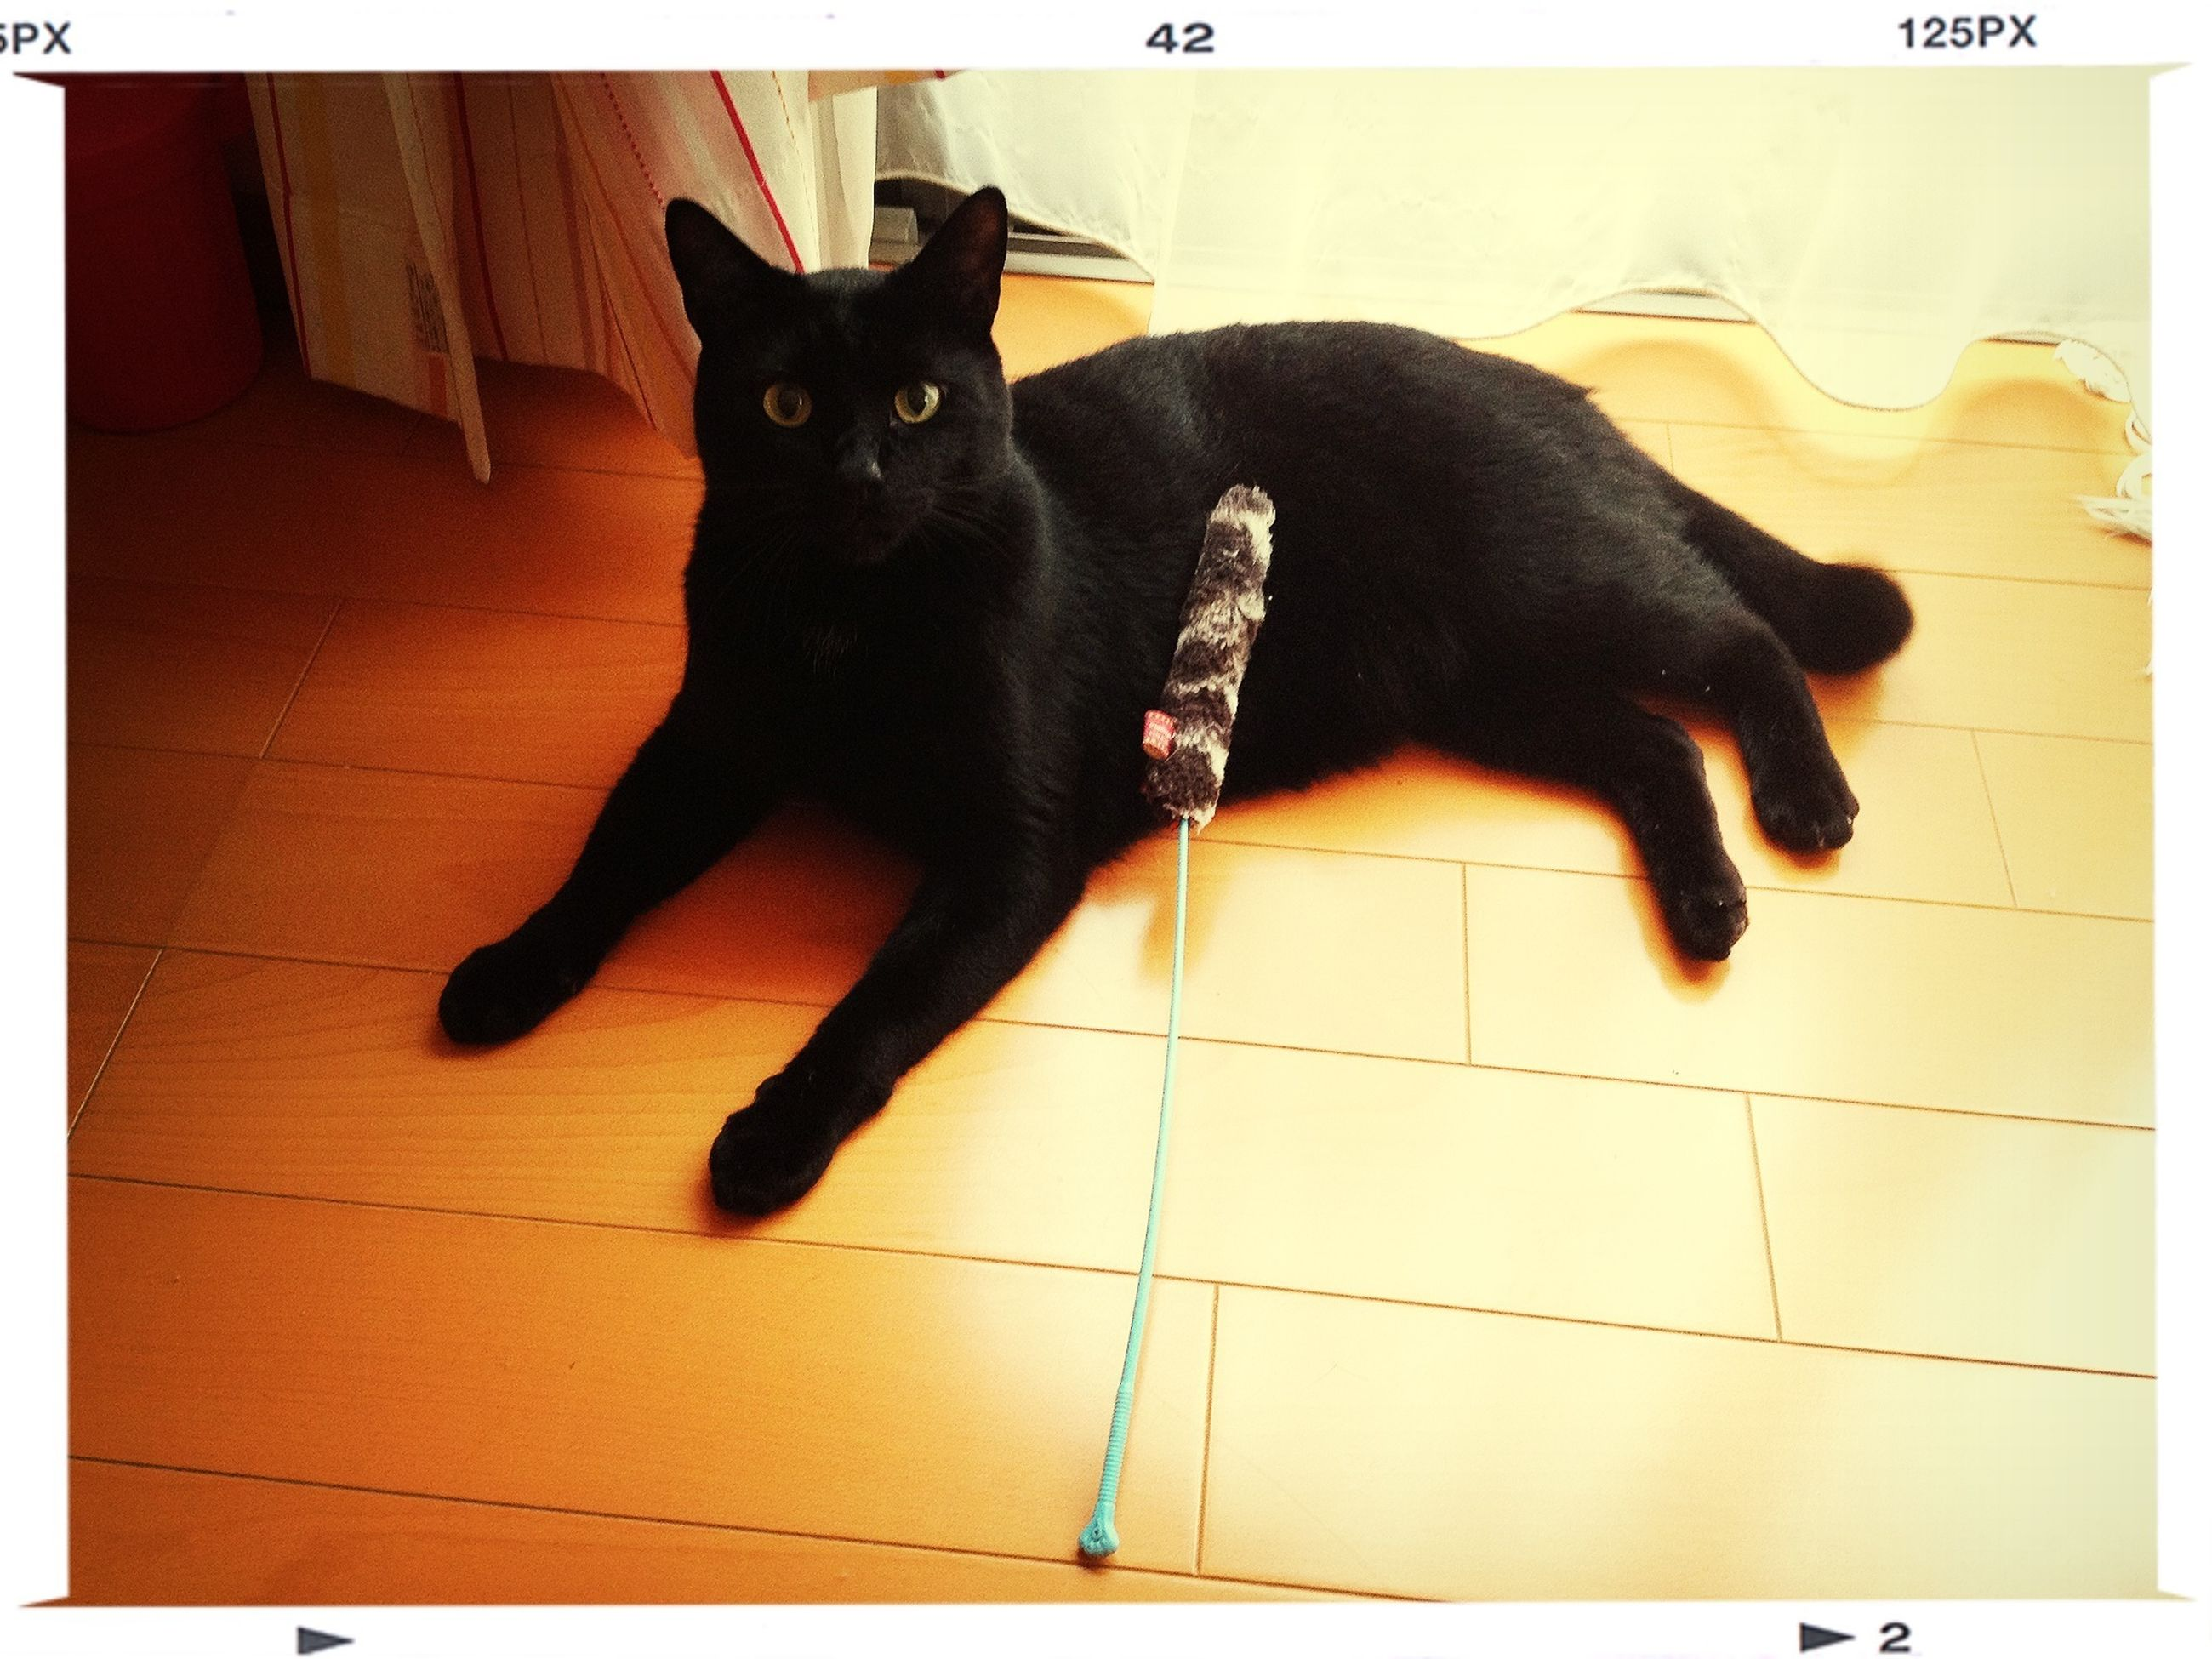 pets, domestic animals, domestic cat, animal themes, one animal, cat, mammal, feline, indoors, black color, relaxation, transfer print, portrait, black, full length, looking at camera, sitting, auto post production filter, alertness, lying down